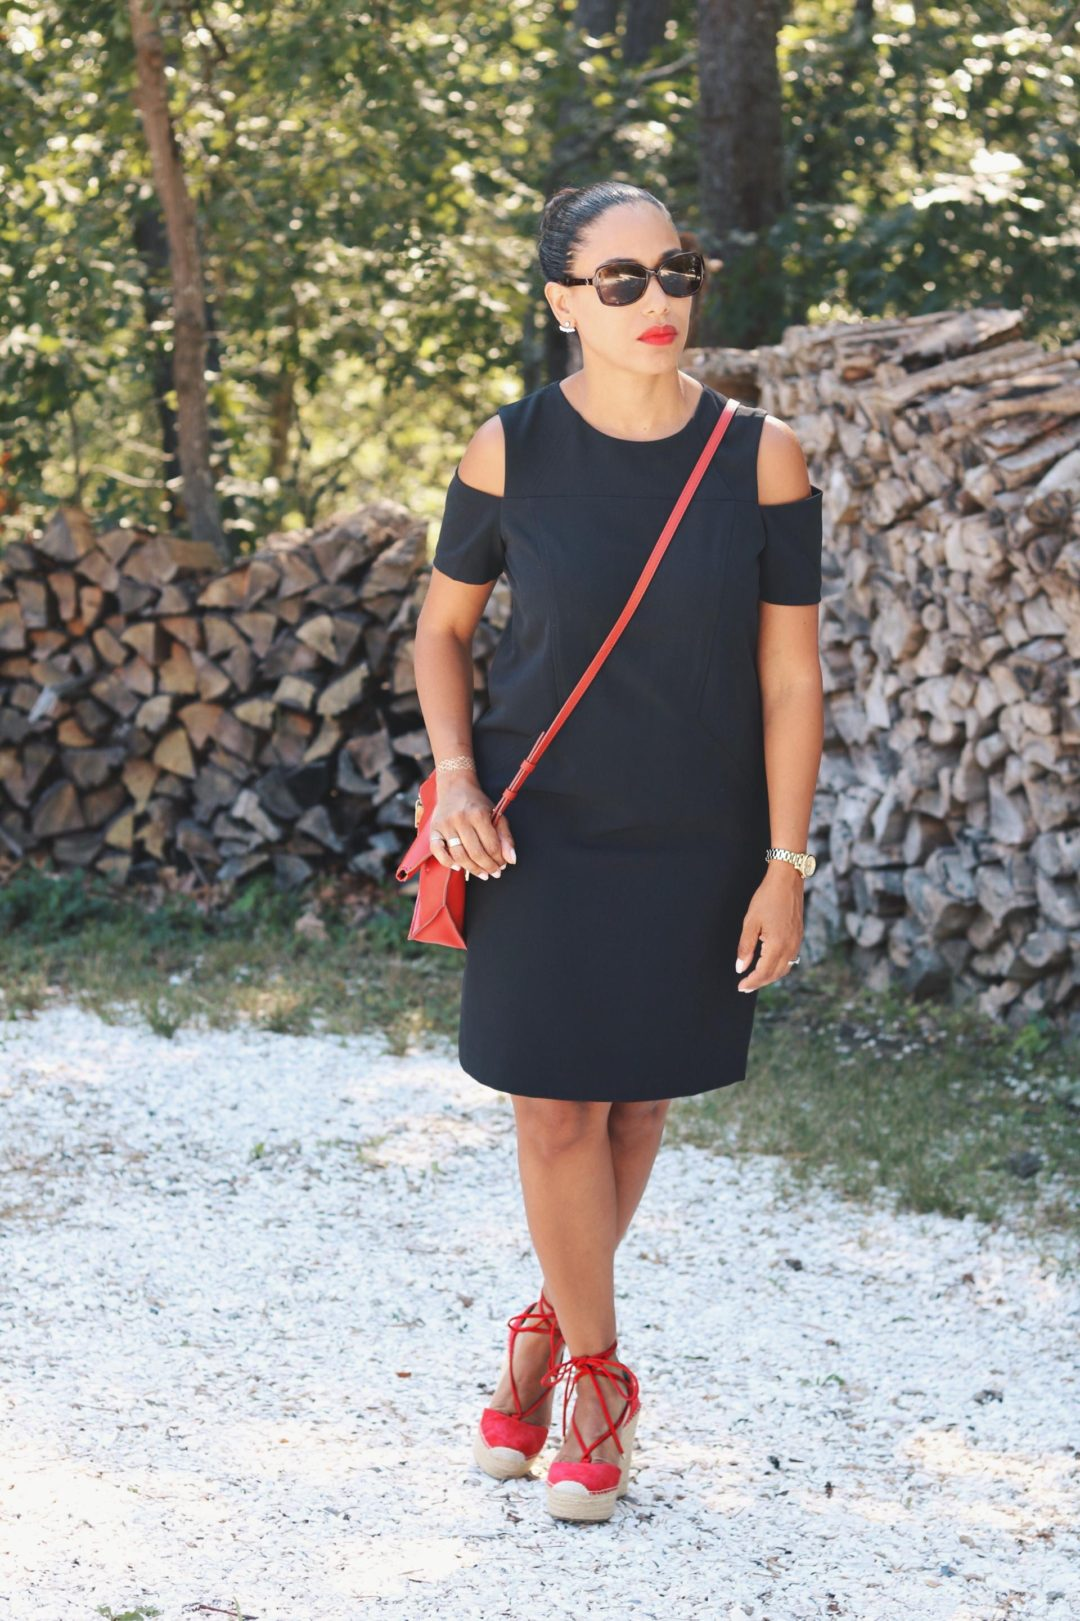 This Season's Gold // LBD with a Pop of Red